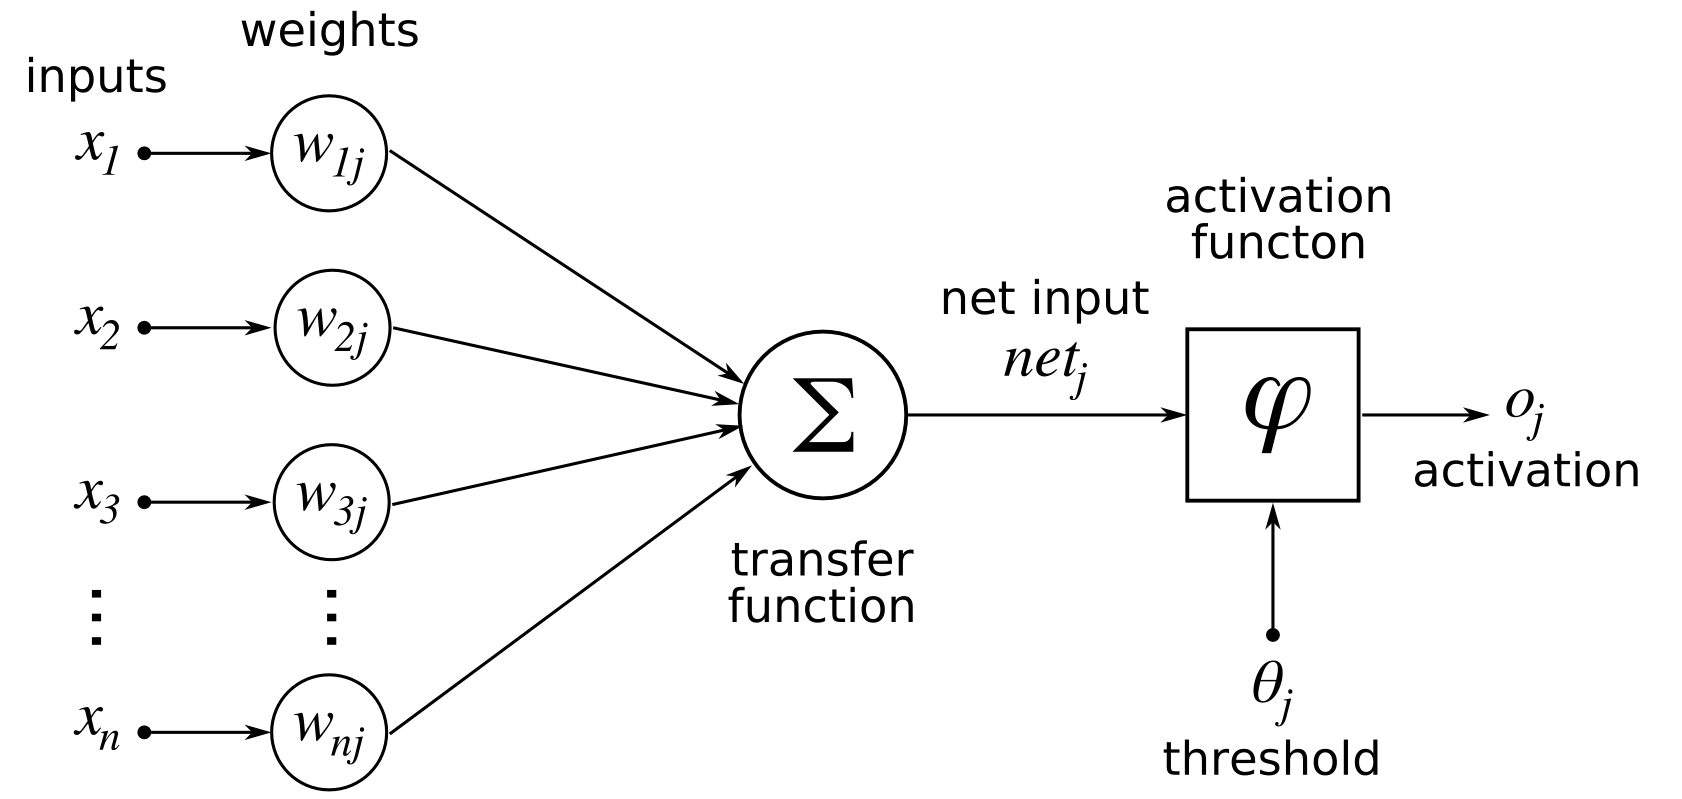 A diagram of a standard neuron. I will be using a slightly different notation consistent with <a href='http://neuralnetworksanddeeplearning.com/chap2.html'>this tutorial</a>.